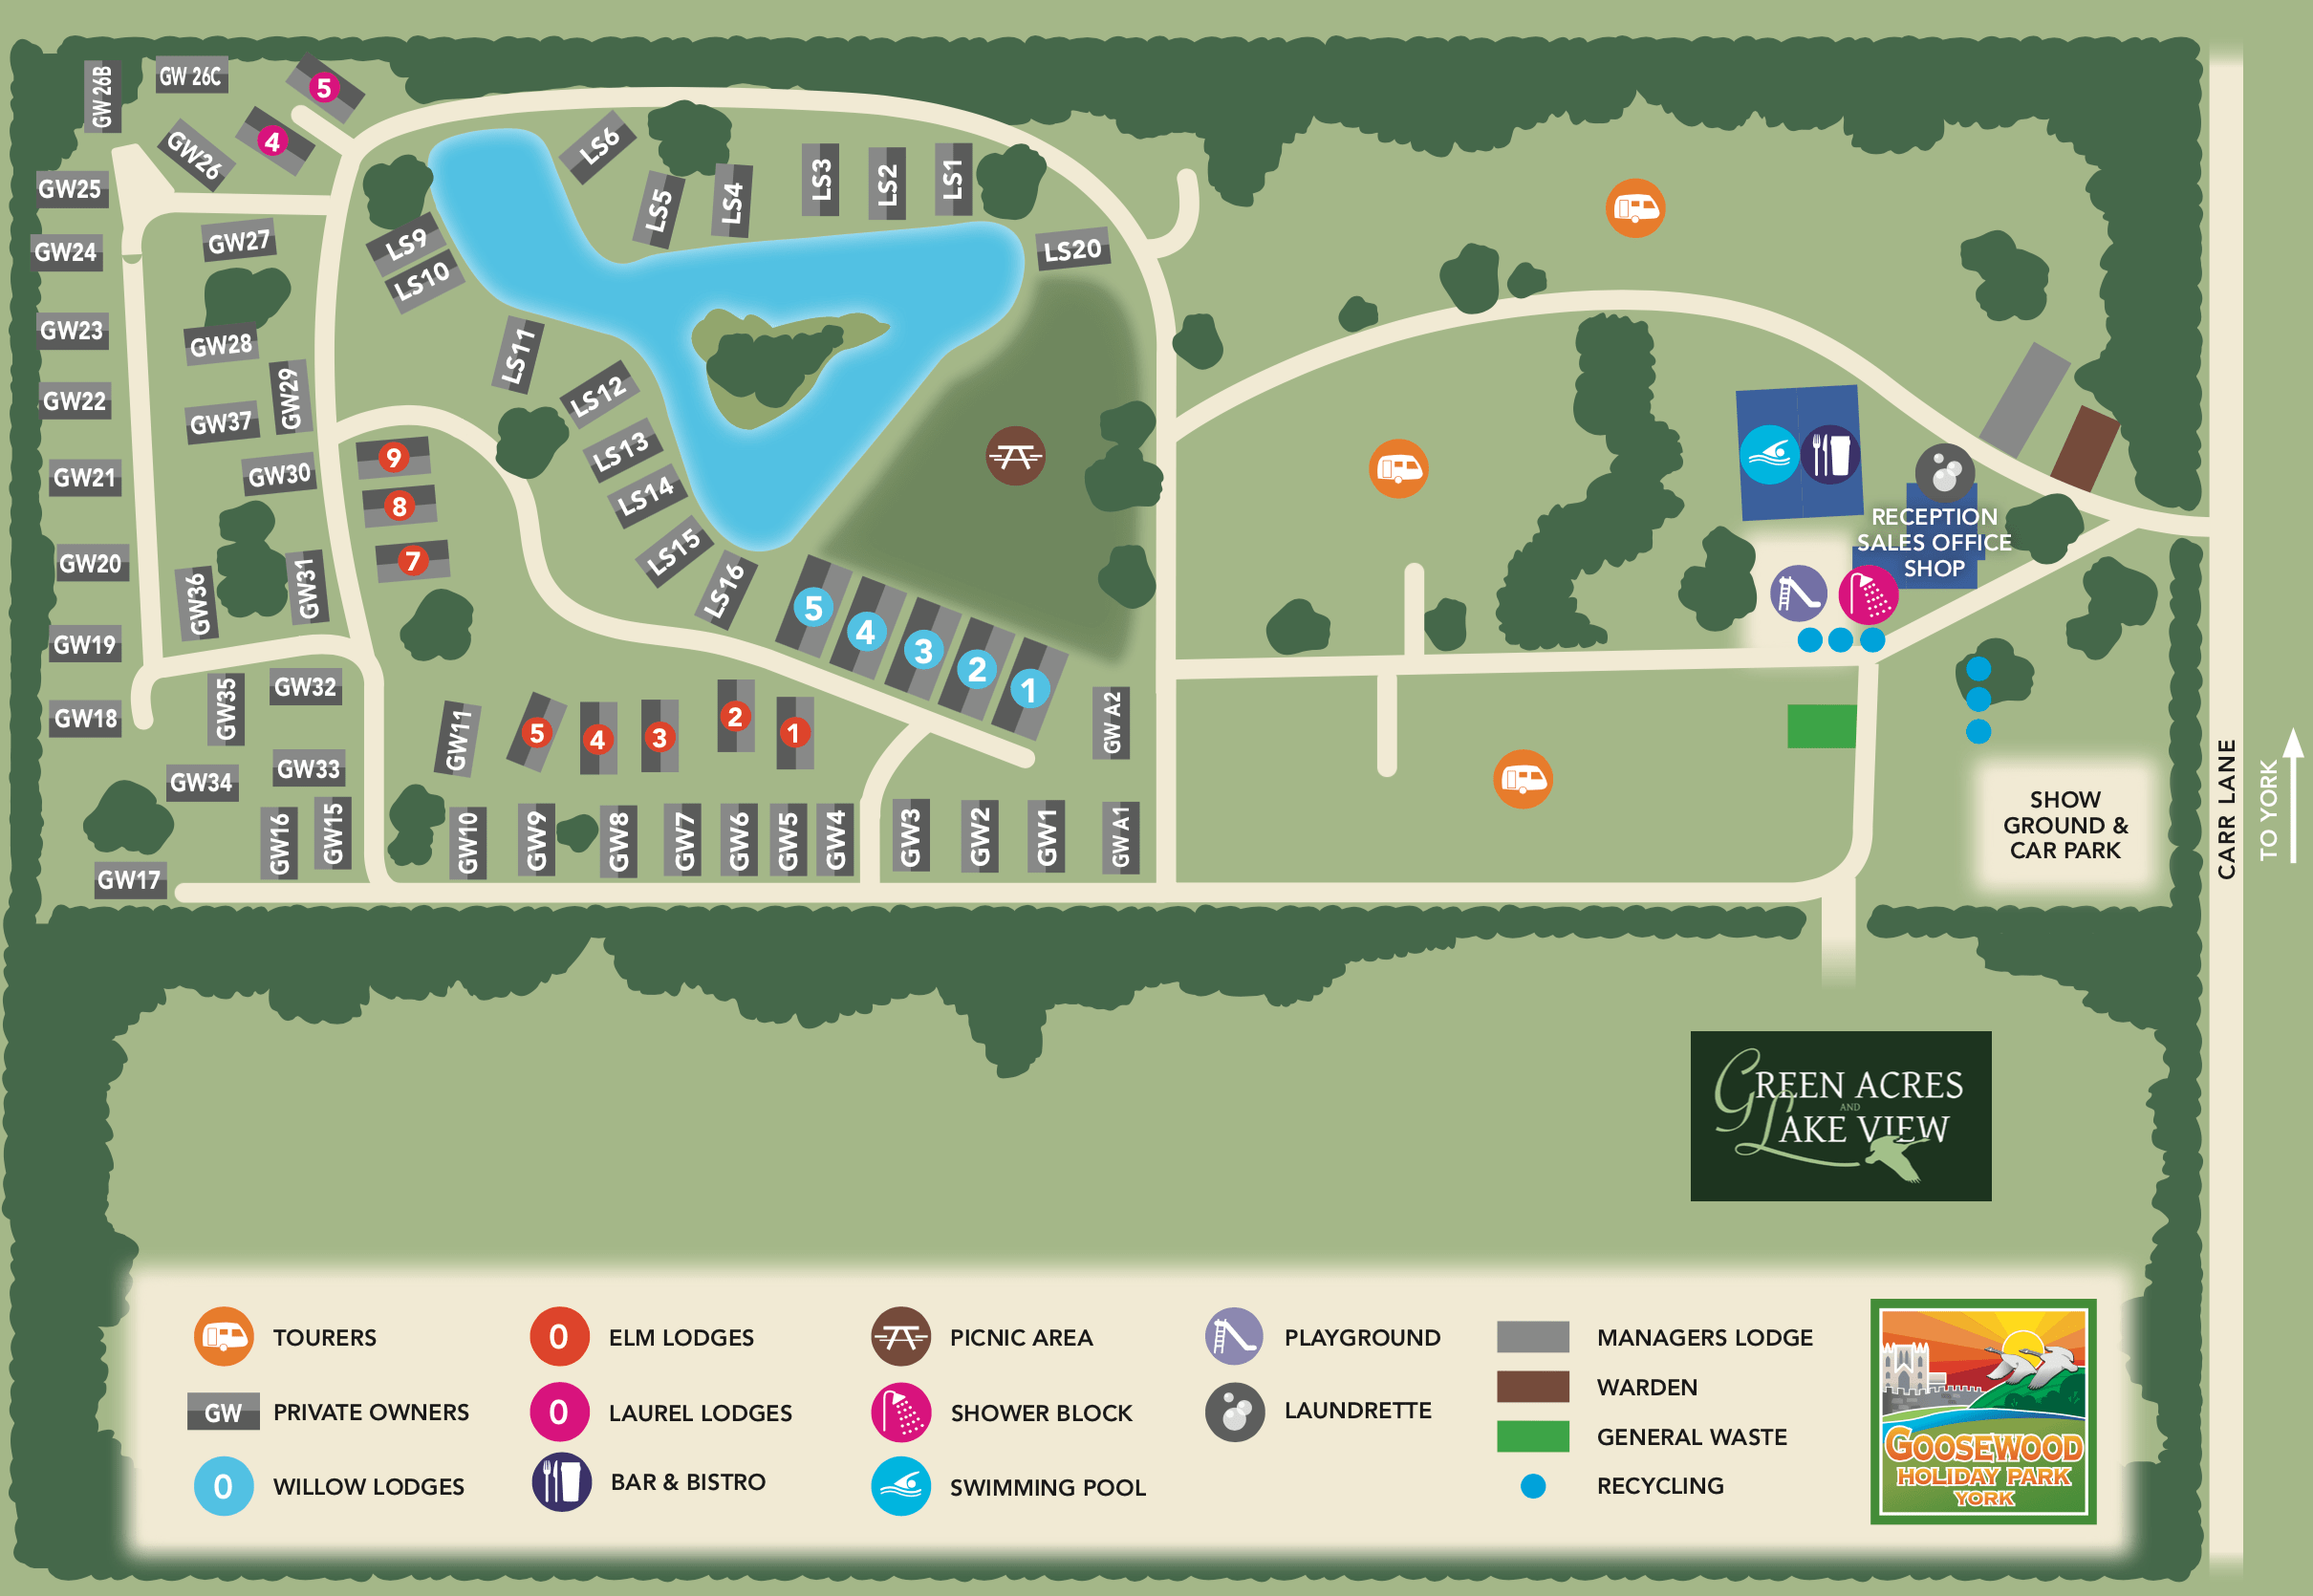 Entry11 Map Of Goosewood Holiday Park In York Flower Of May